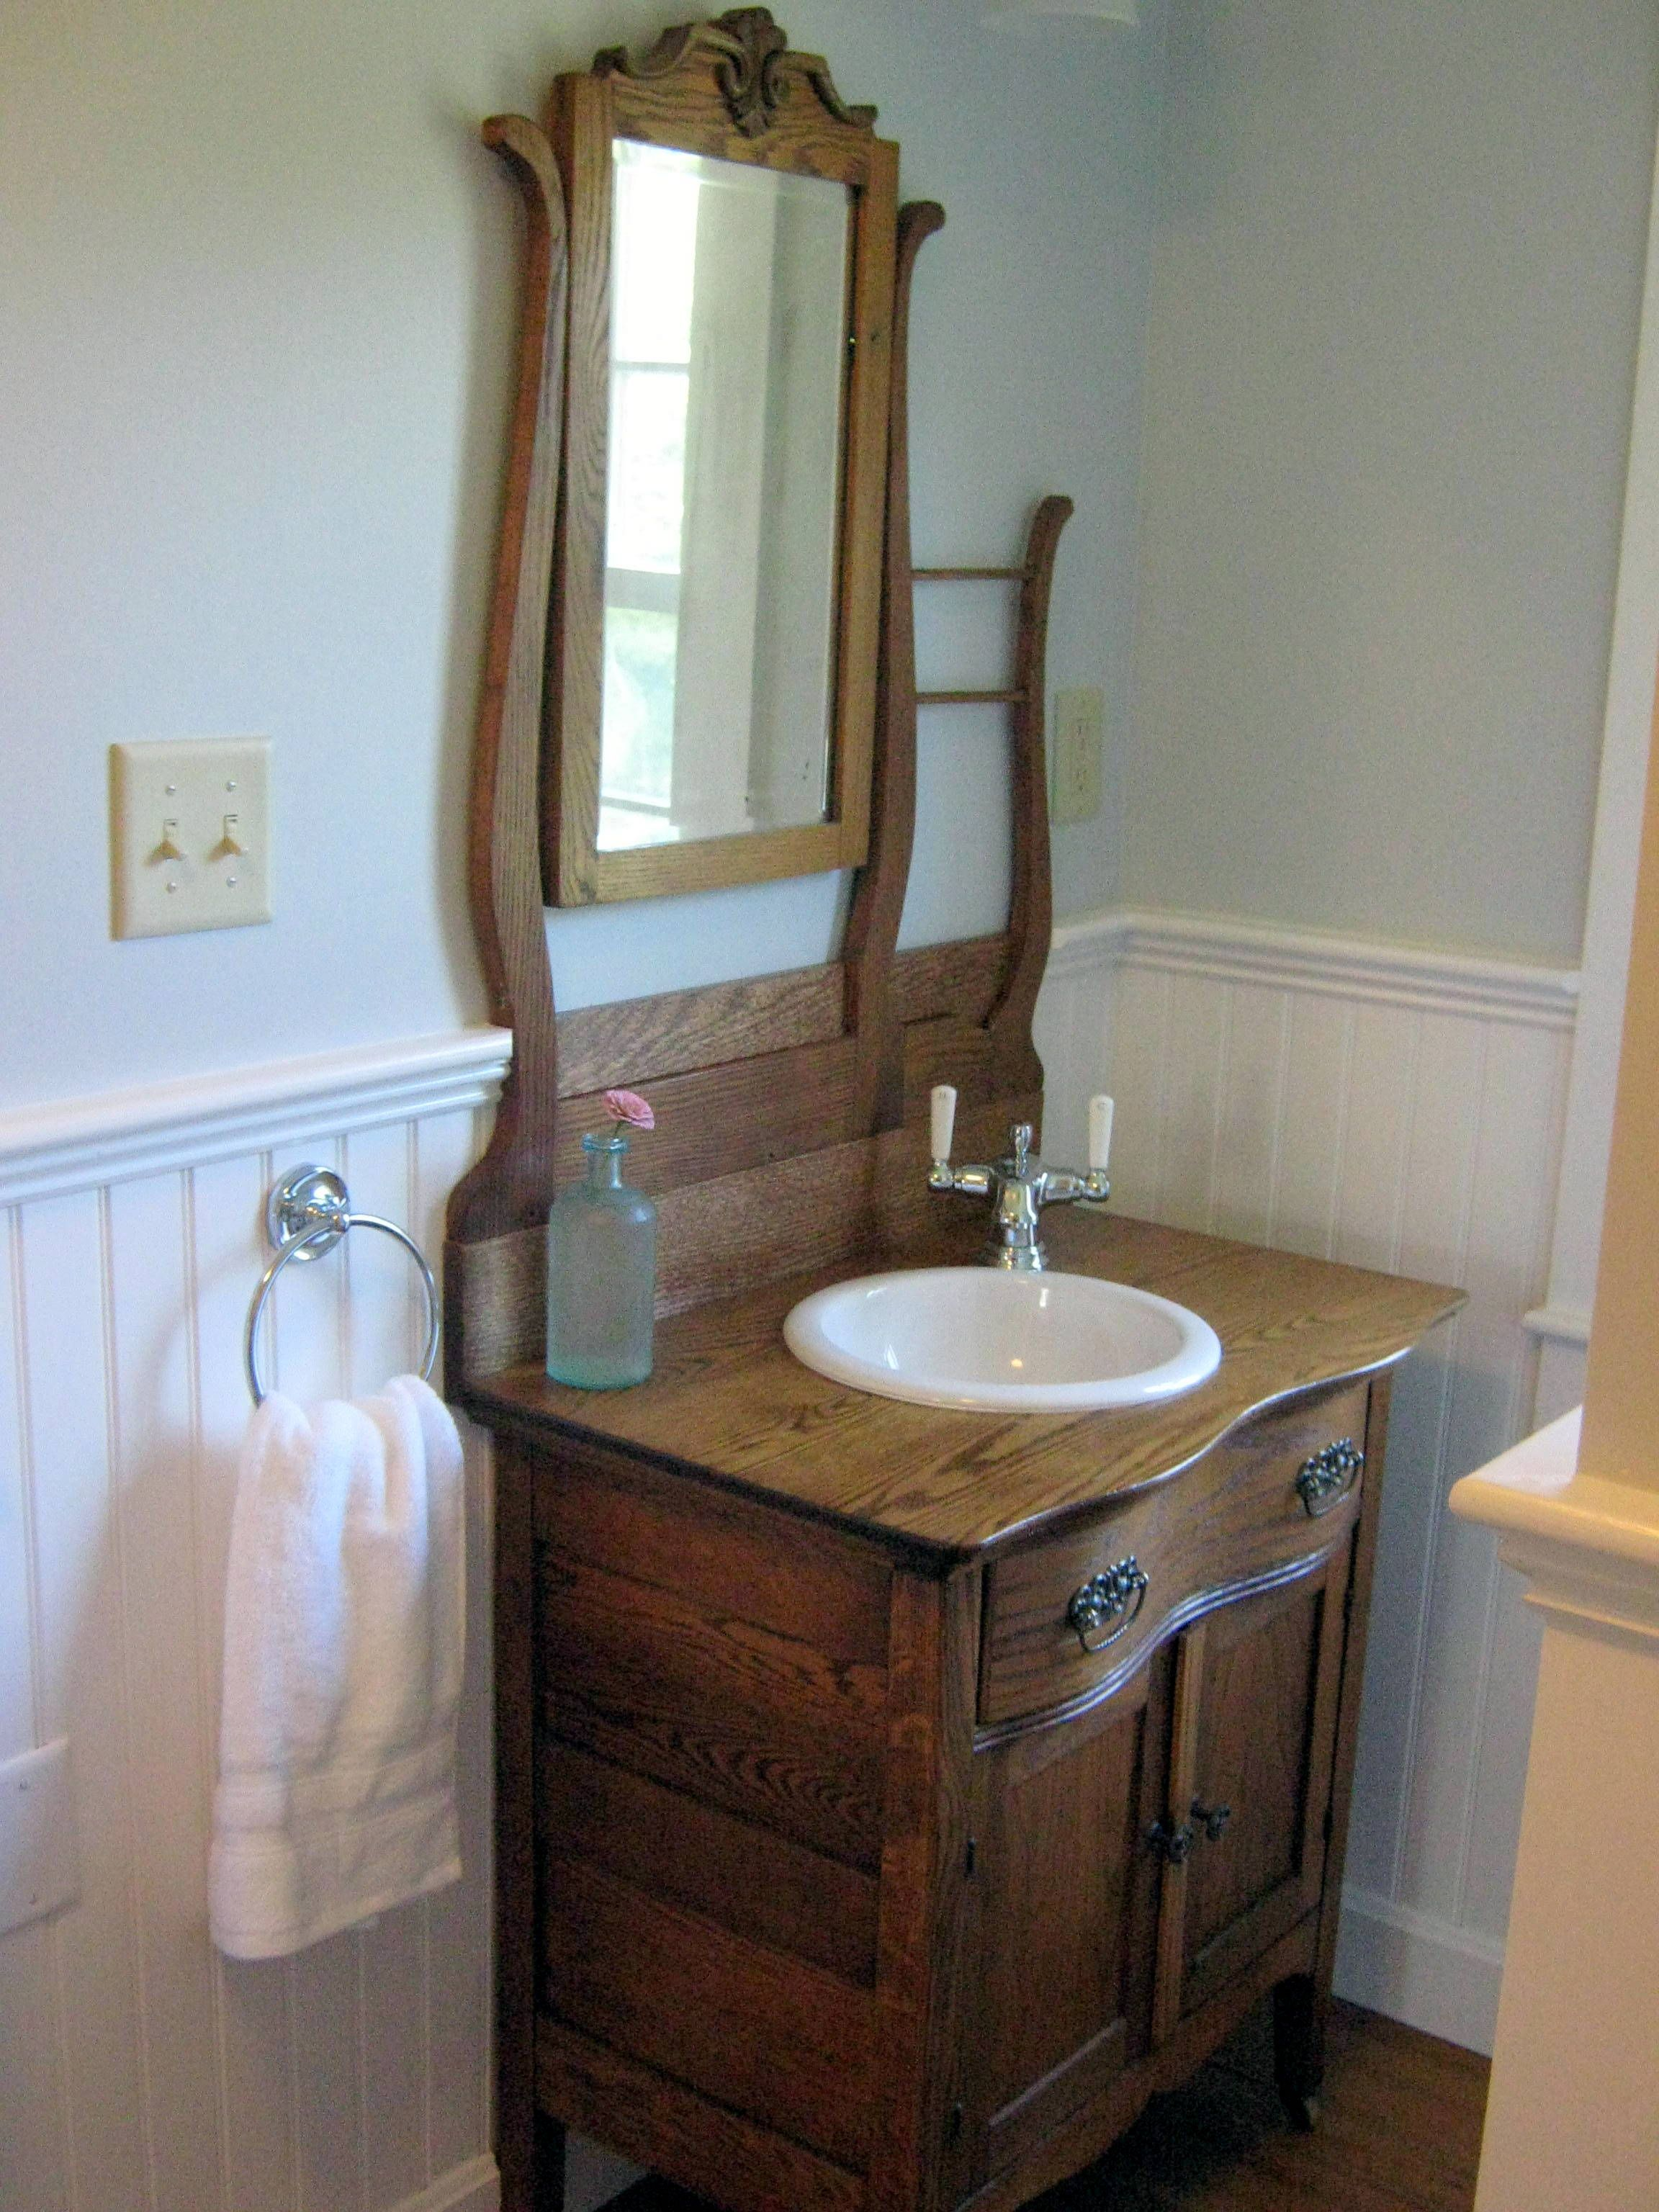 Antique Oak Hotel Commode Re Purposed Into A Bathroom Vanity Just